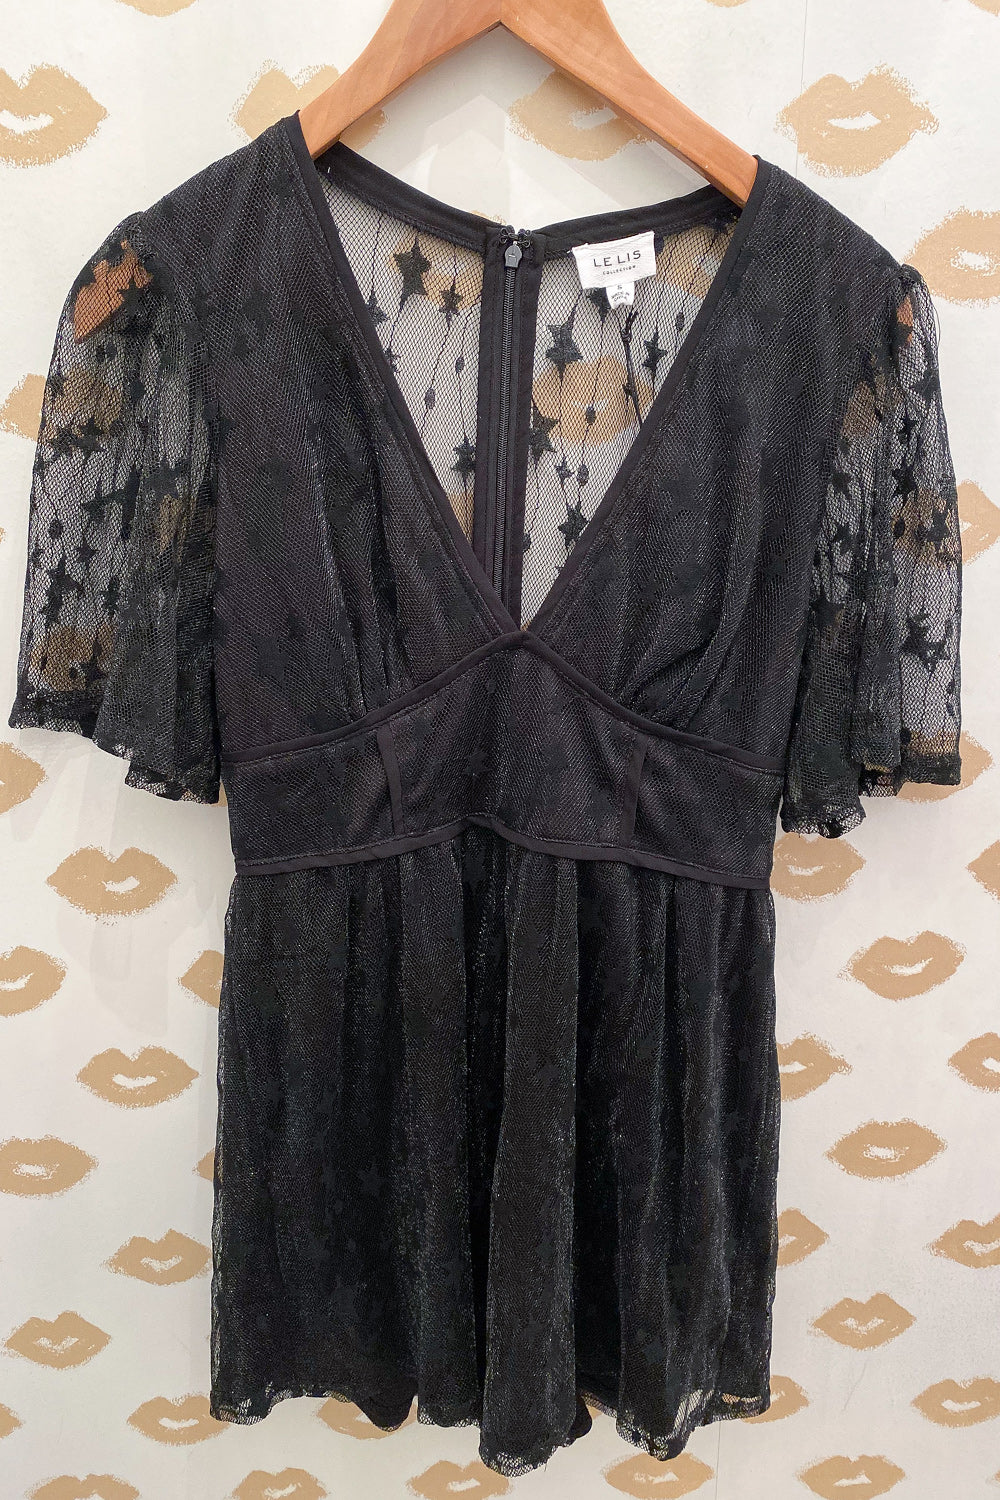 Be a Star Black Lace Overlay V Neck Romper